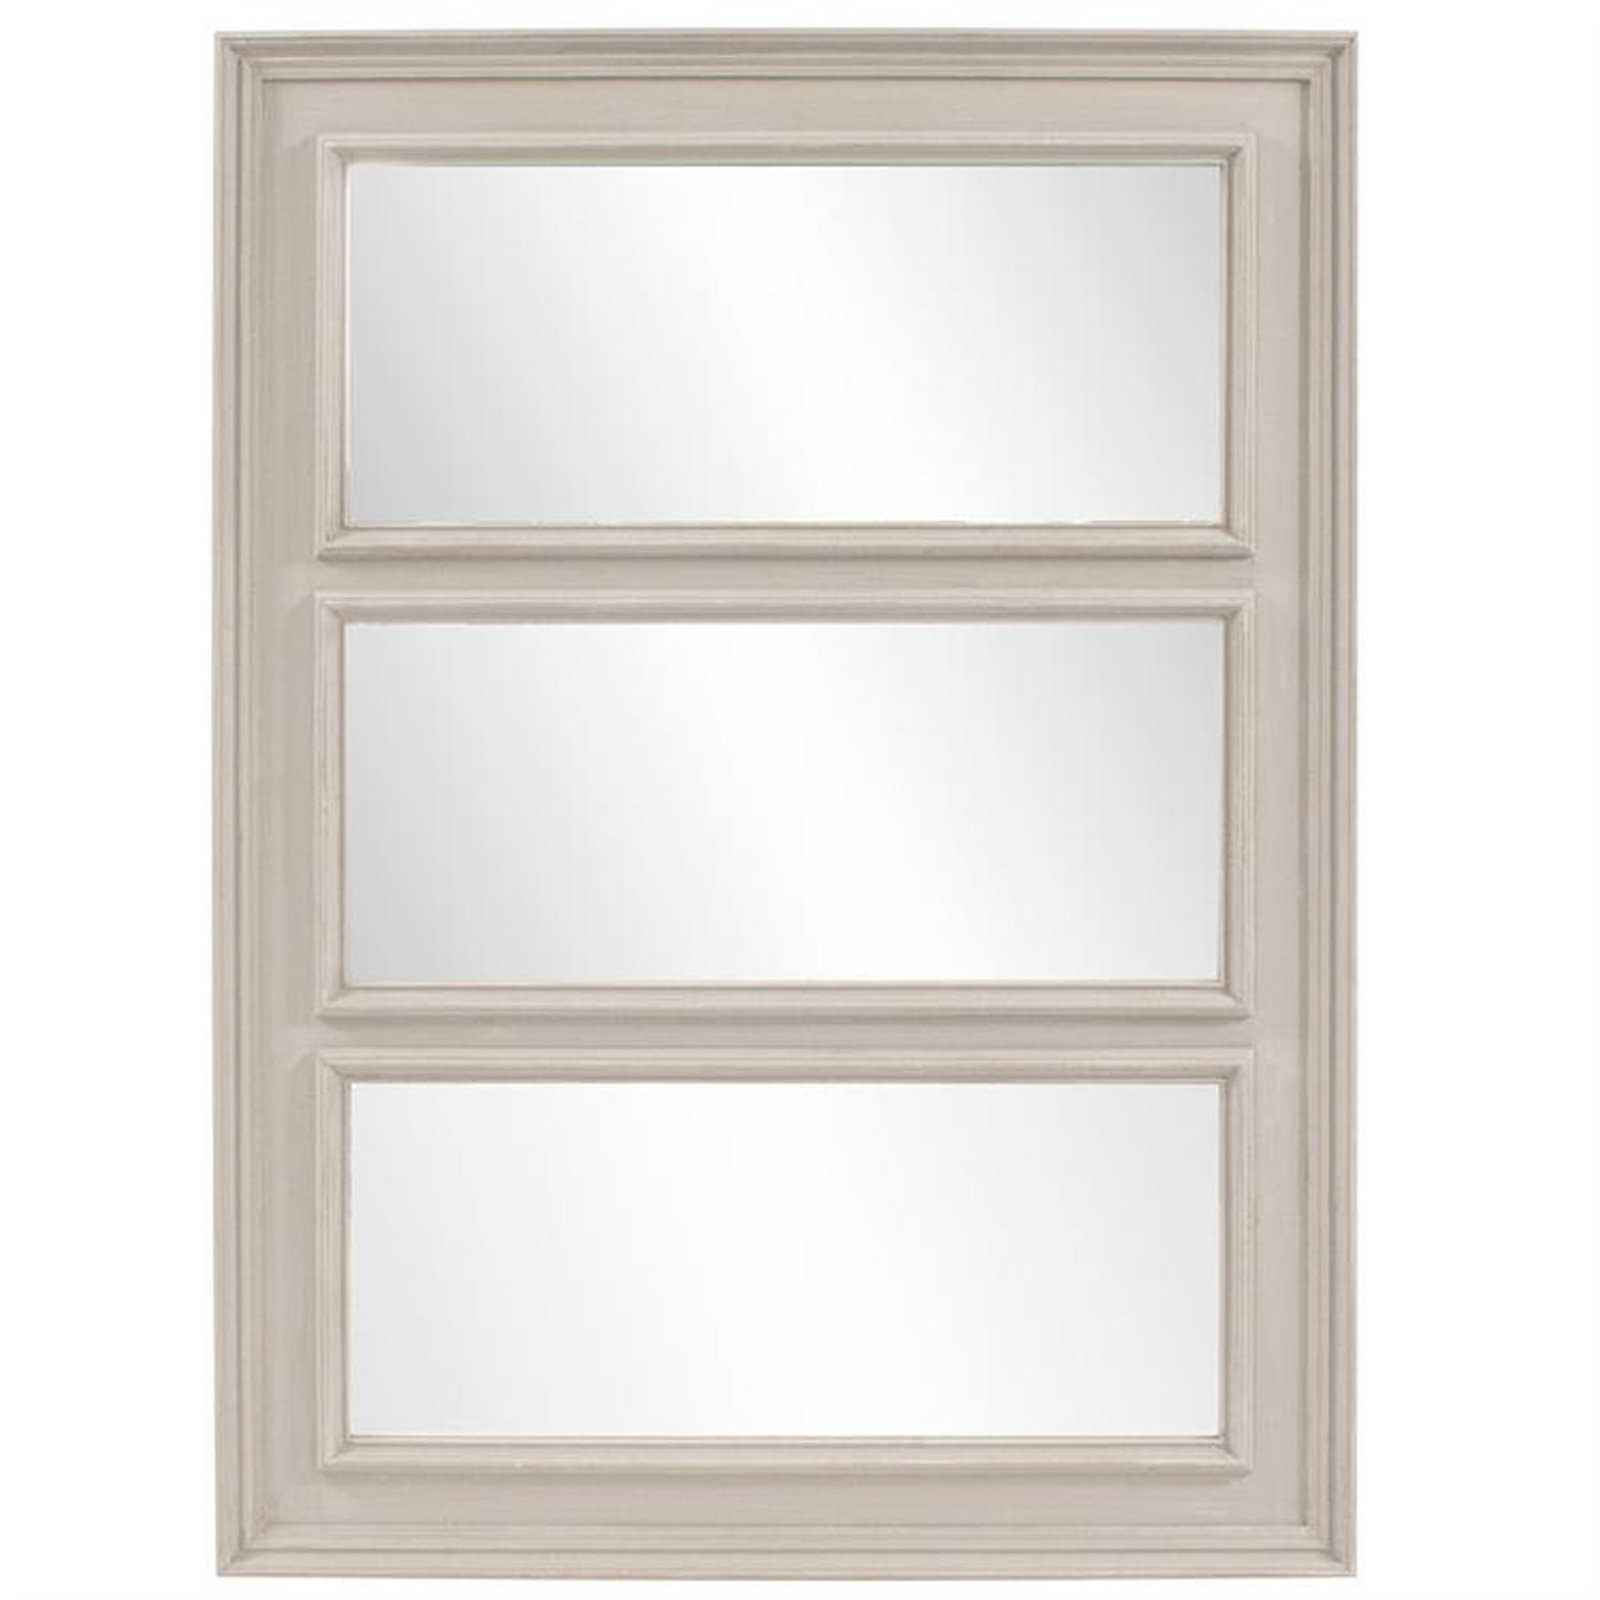 Windowpane Mirror | Ballard Mirror | Six Pane Window Frame